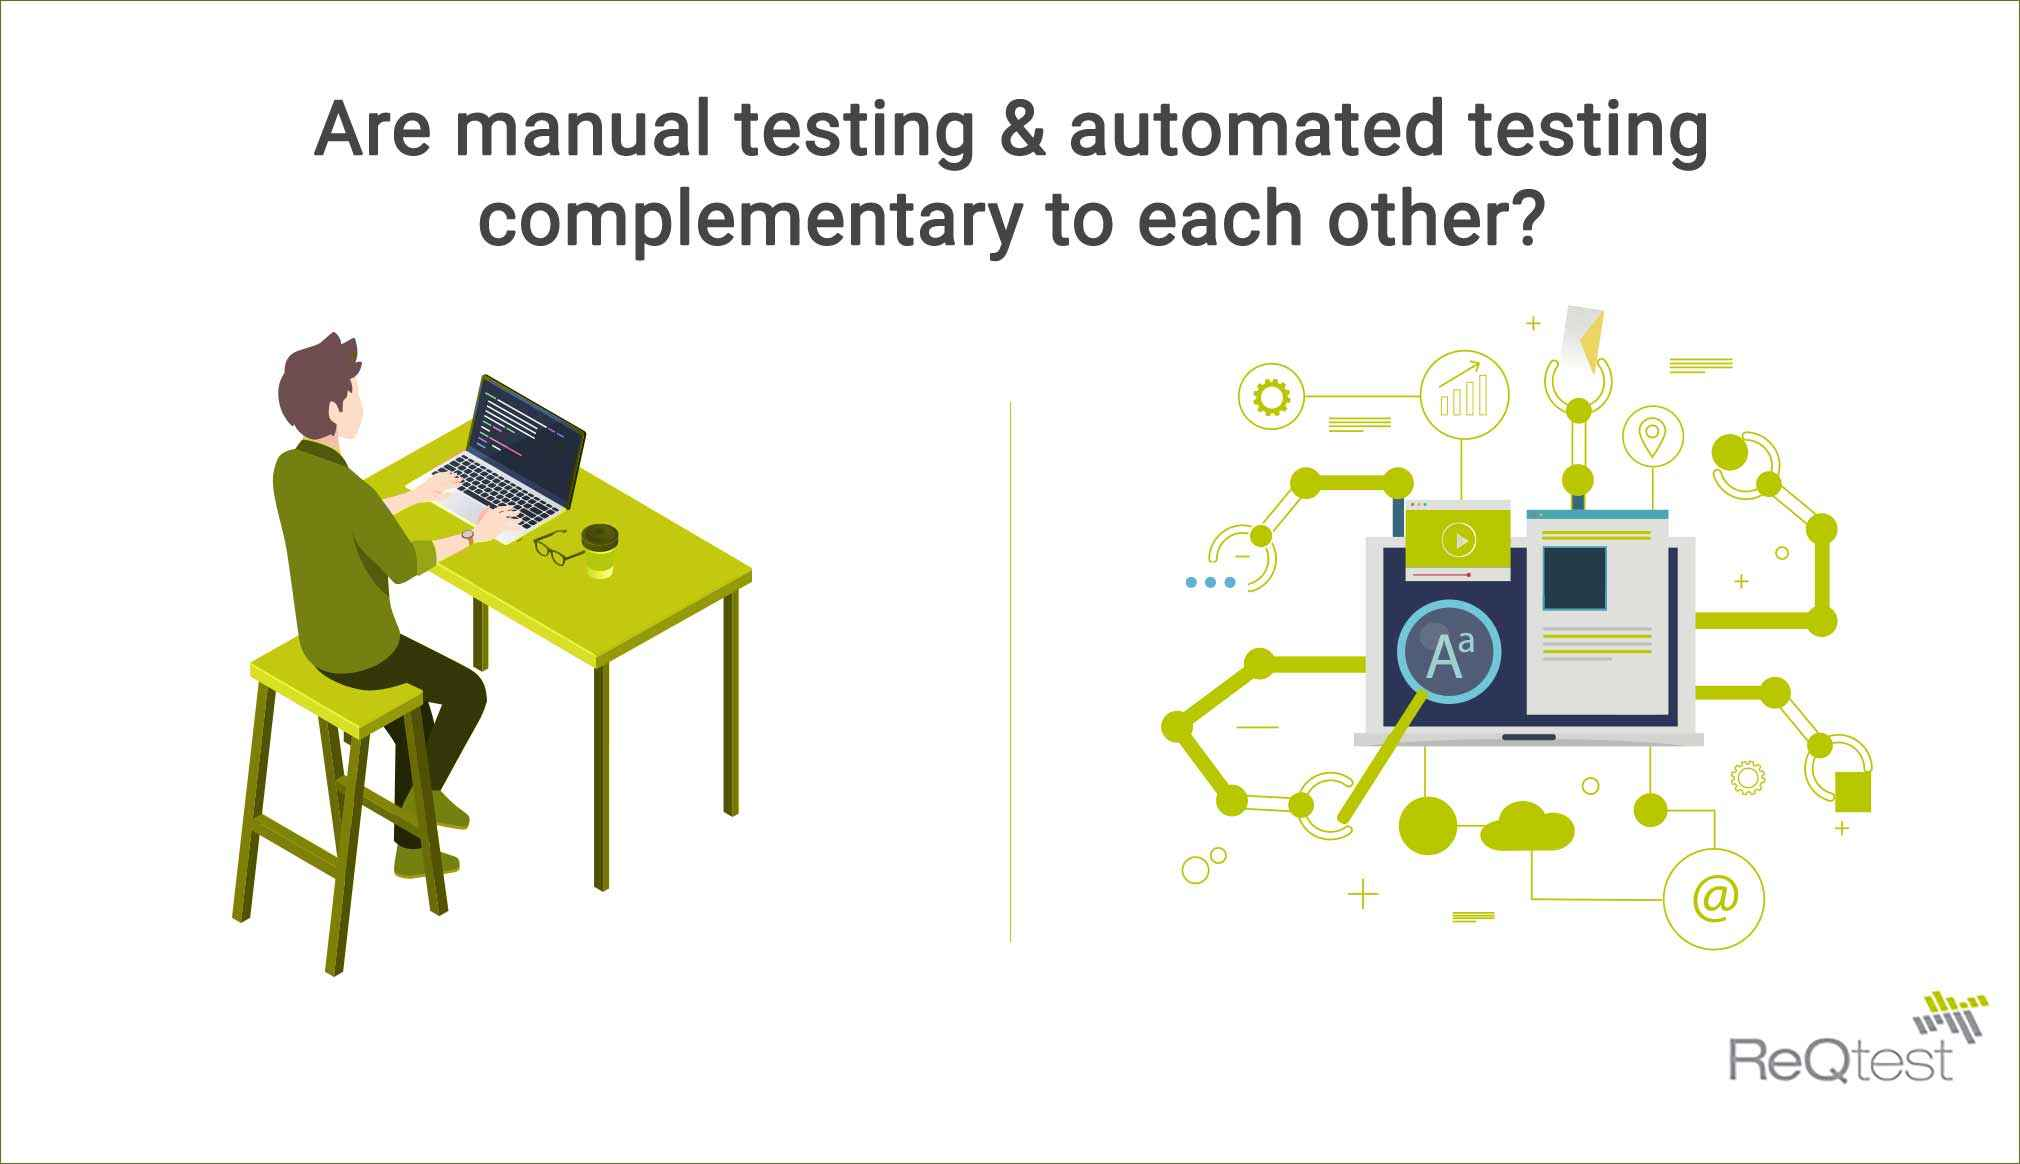 manual Vs Automates testing